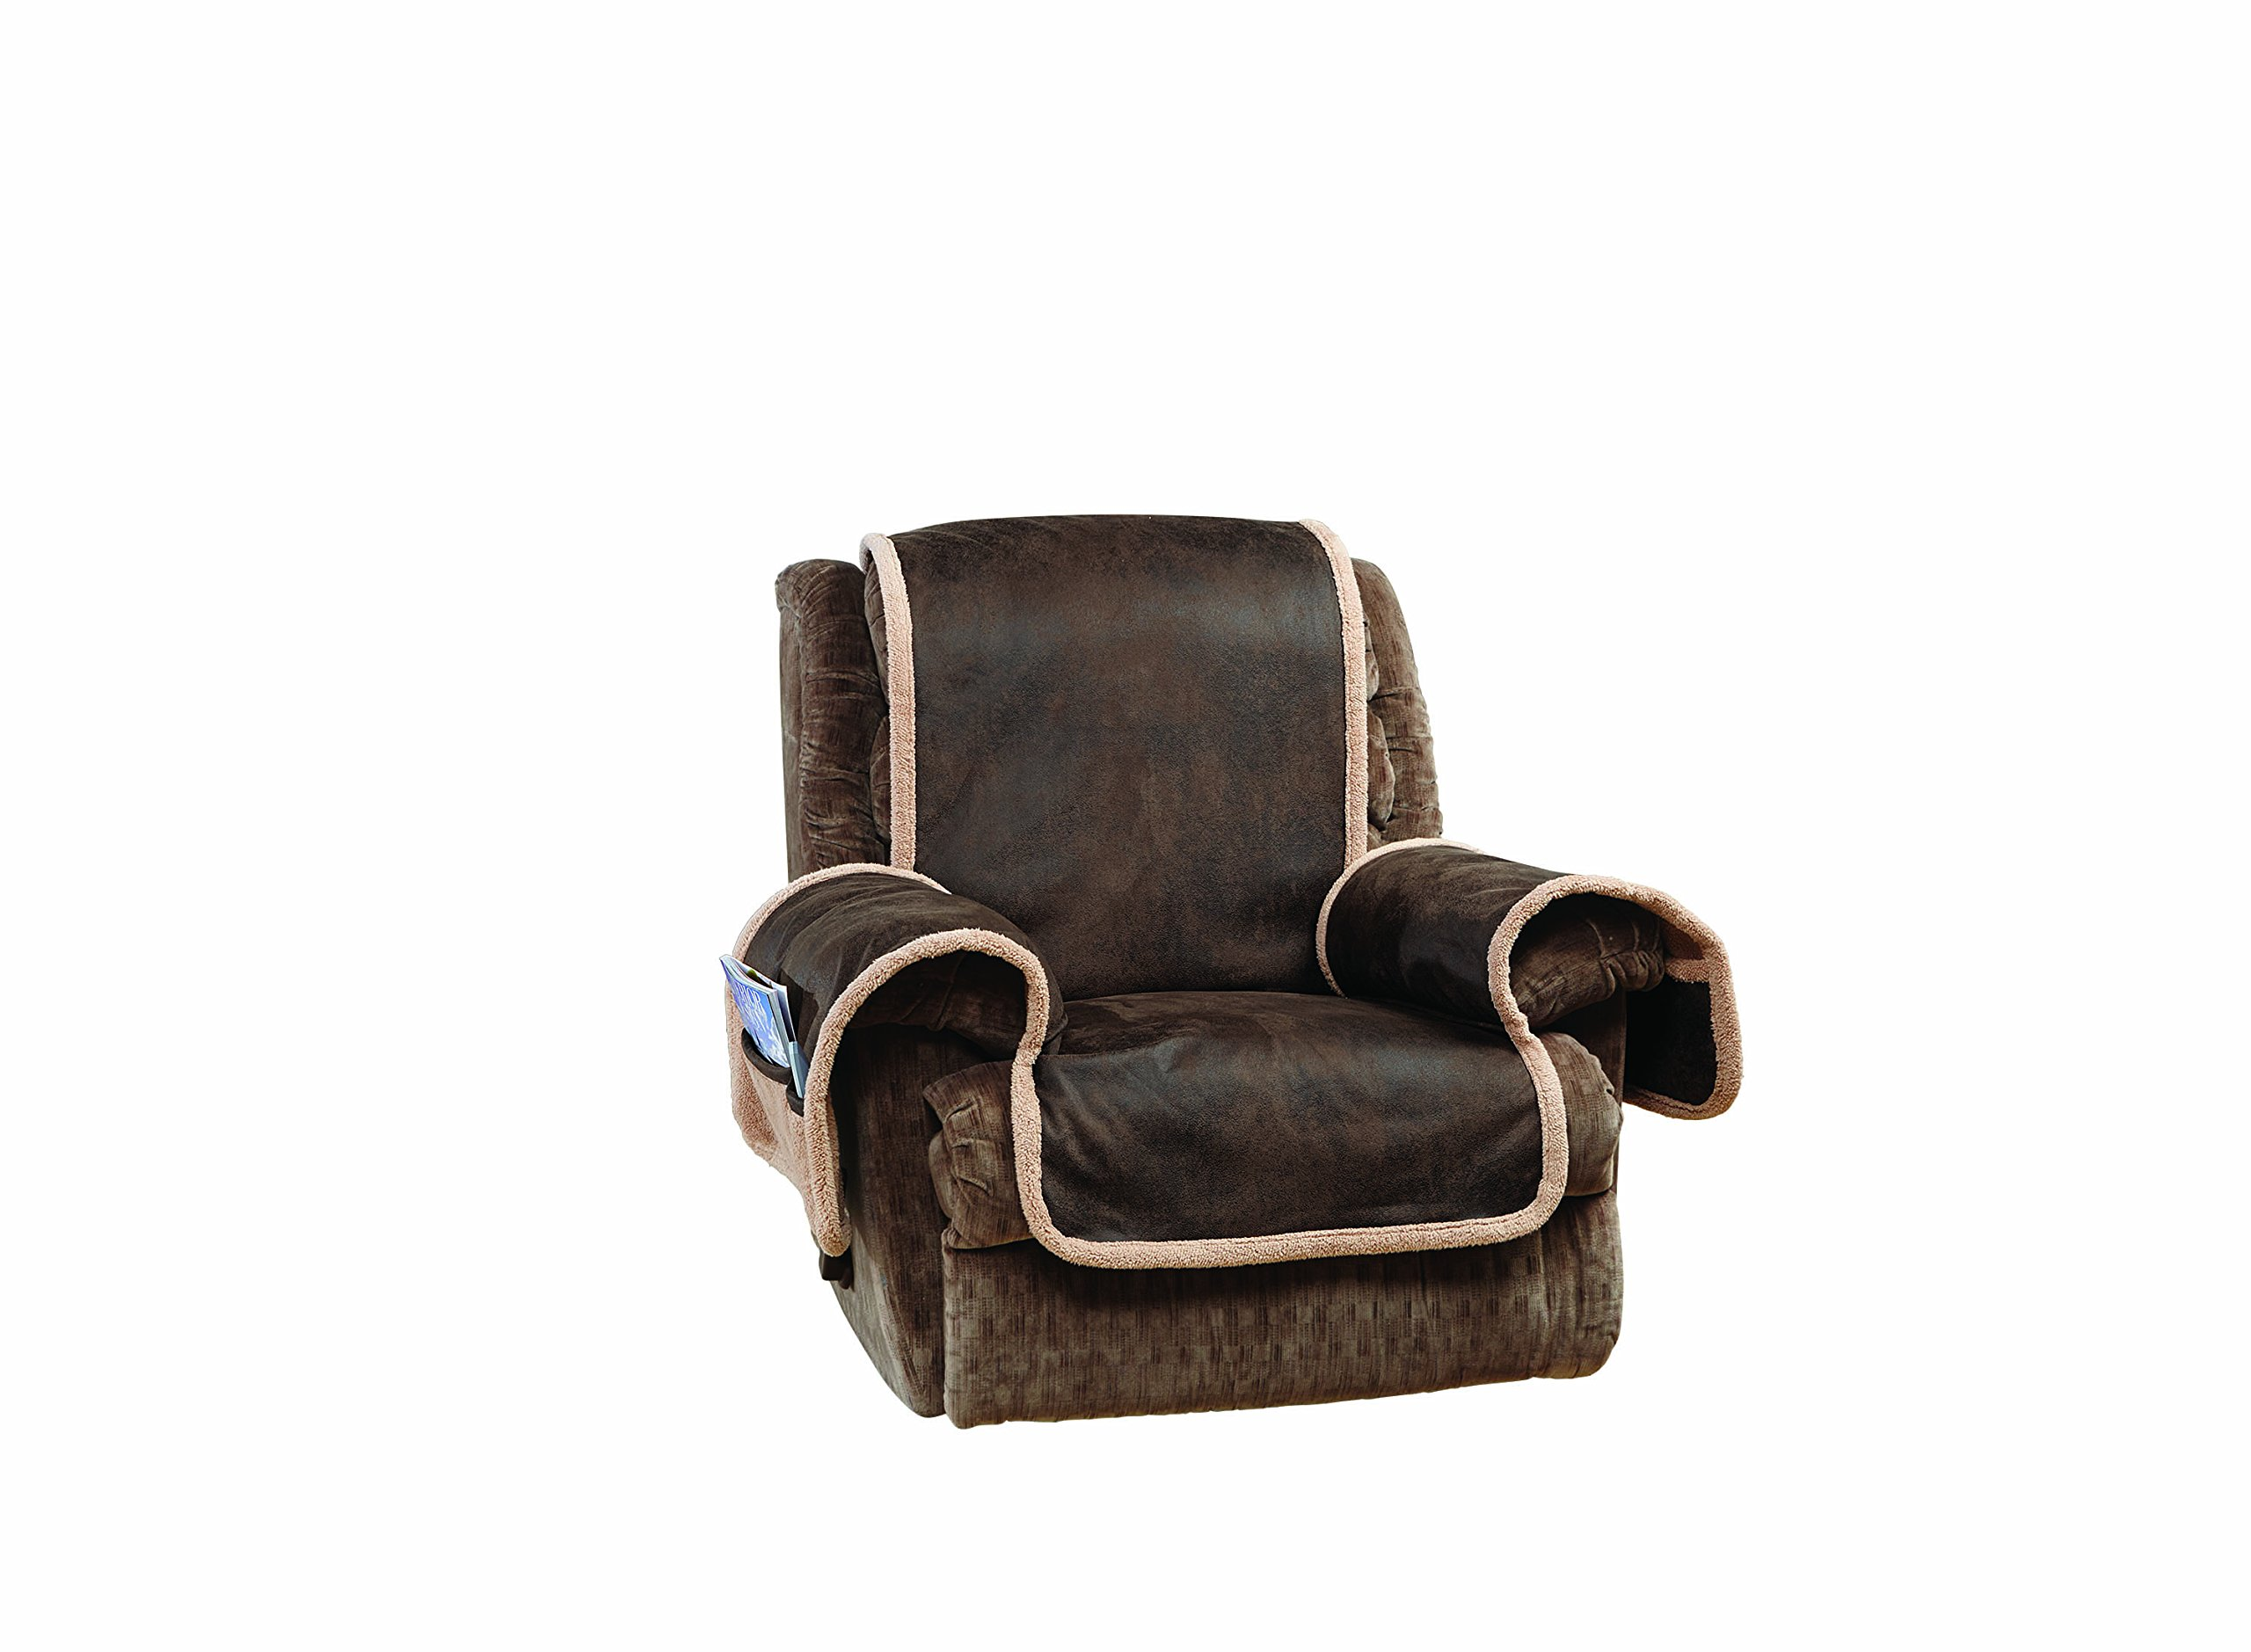 Sure Fit Vintage Faux Leather - Recliner Slipcover - Brown (SF44903) by Surefit